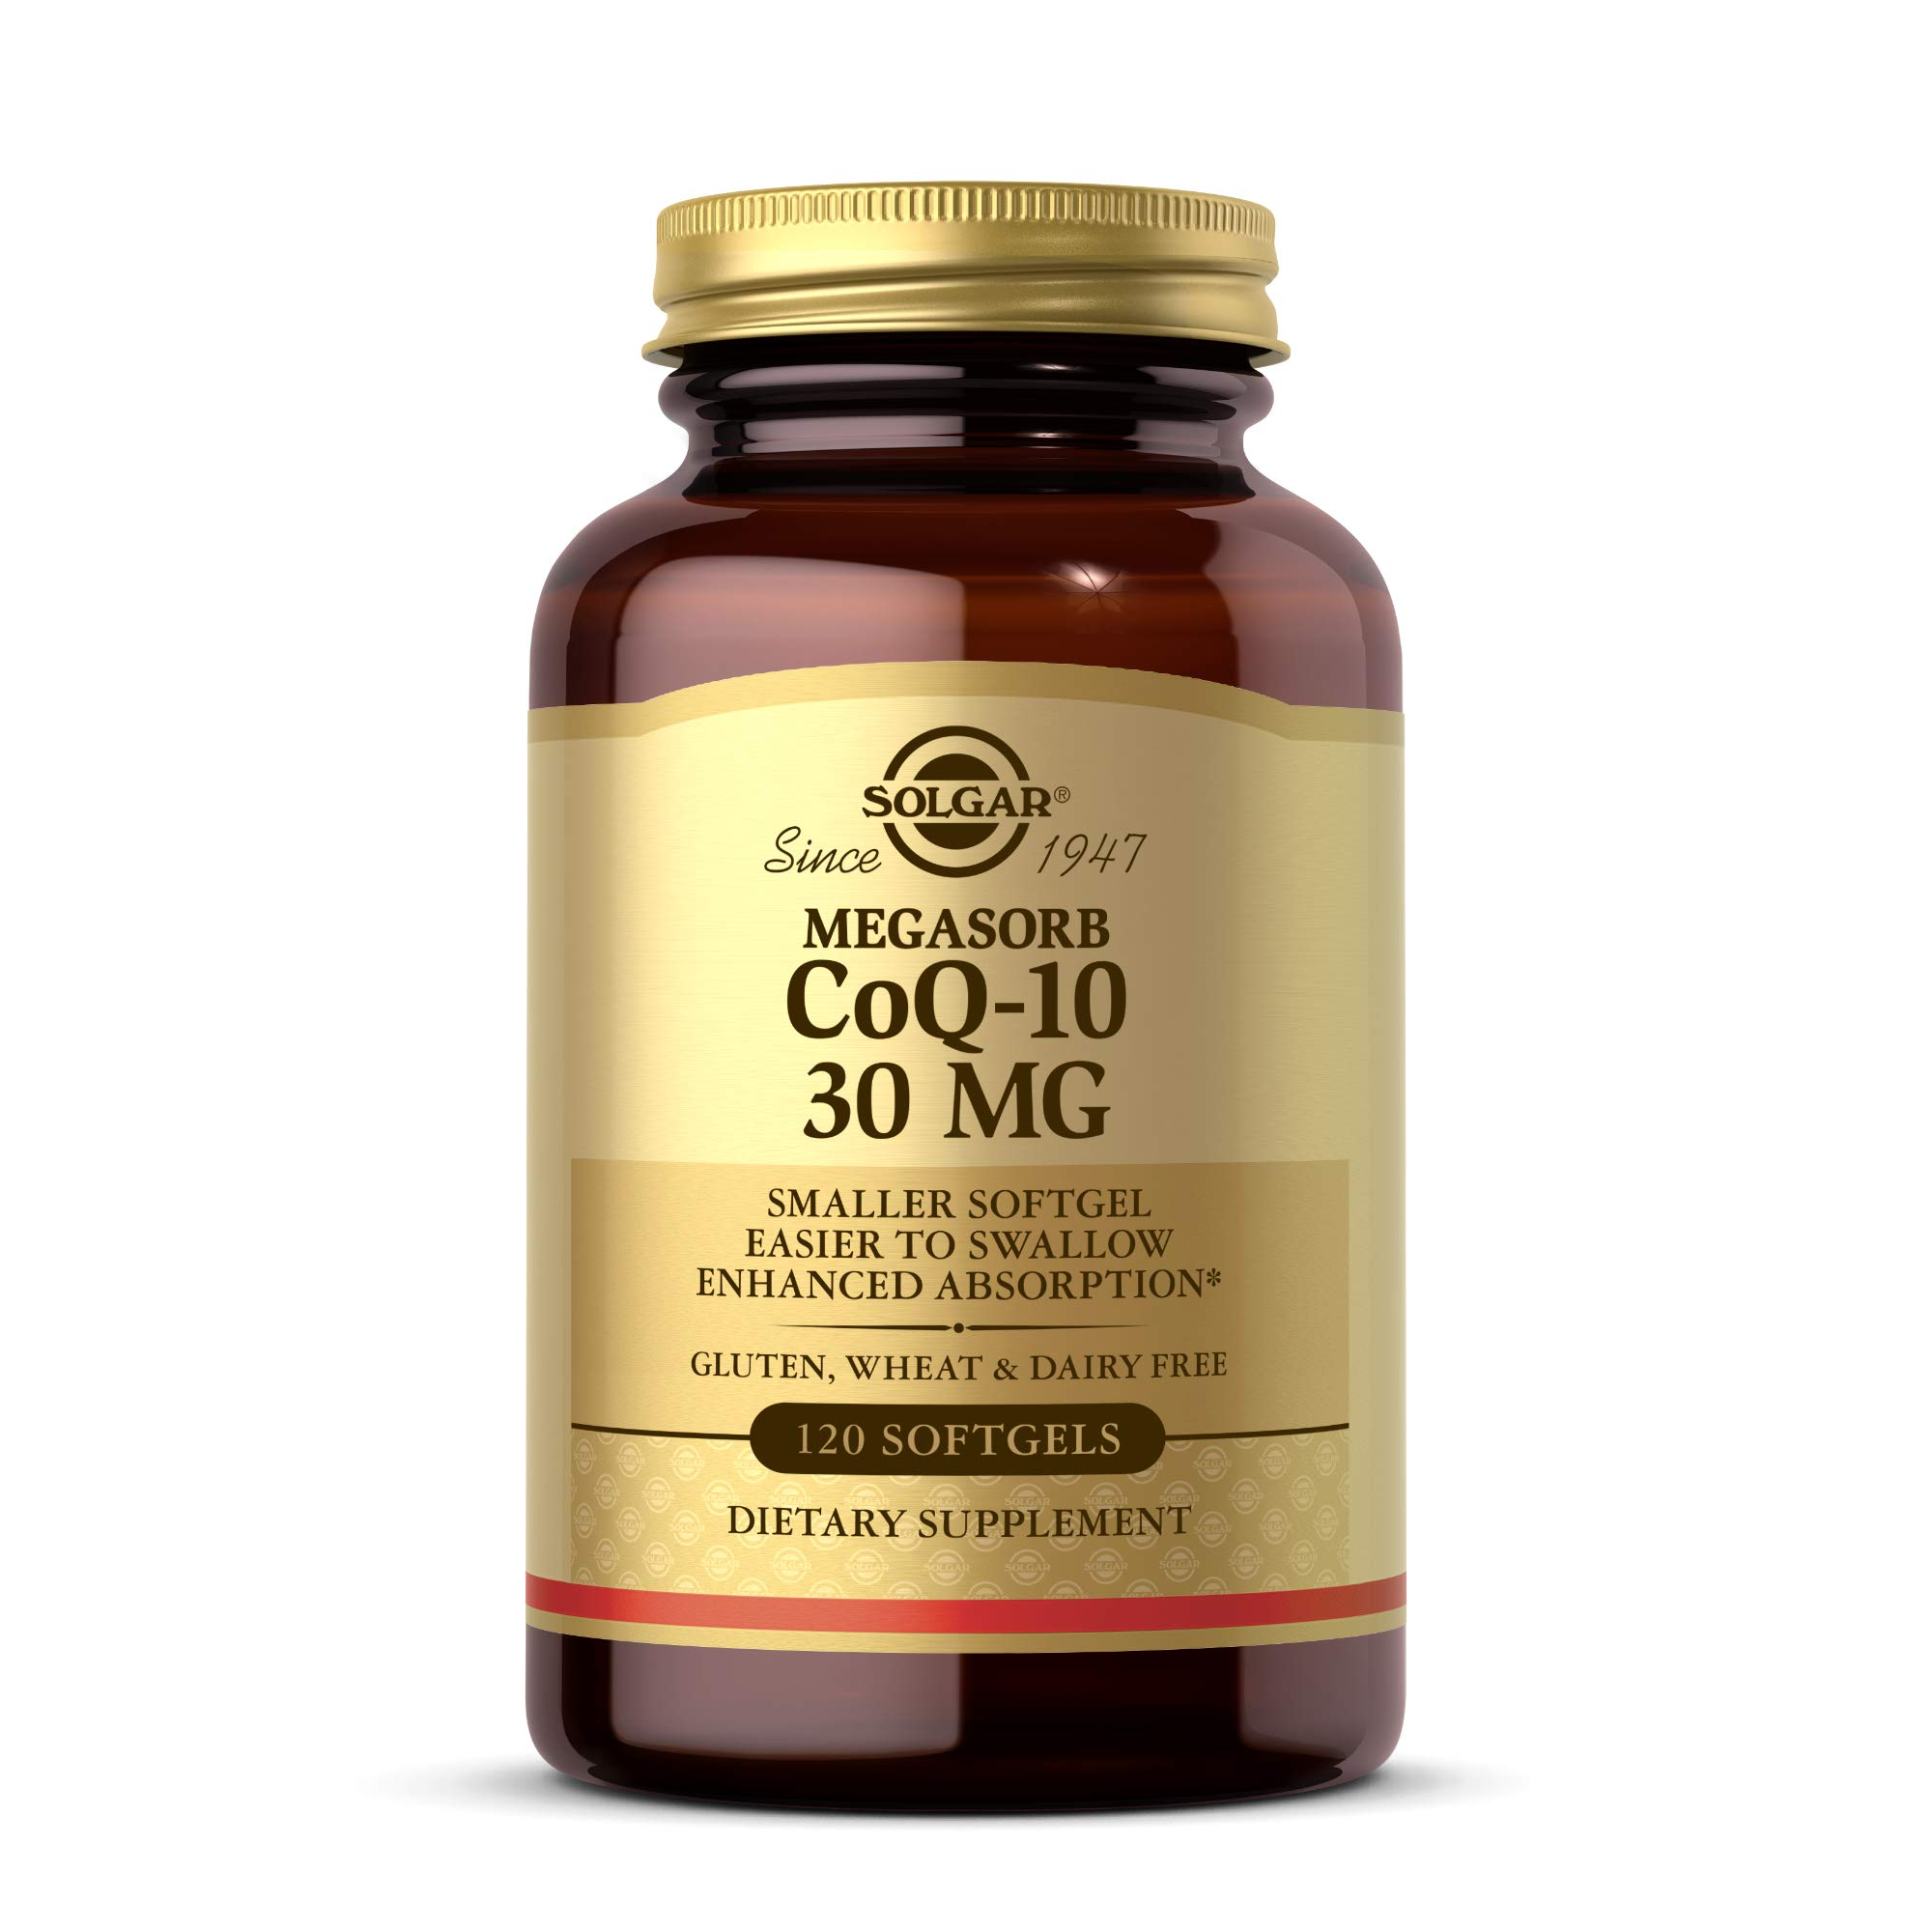 Solgar Megasorb CoQ-10 30 mg, 120 Softgels - Supports Heart Health, Brain Health & Energy Production - Coenzyme Q10 - Smaller Softgel, Easier to Swallow - Gluten Free, Dairy Free - 120 Servings